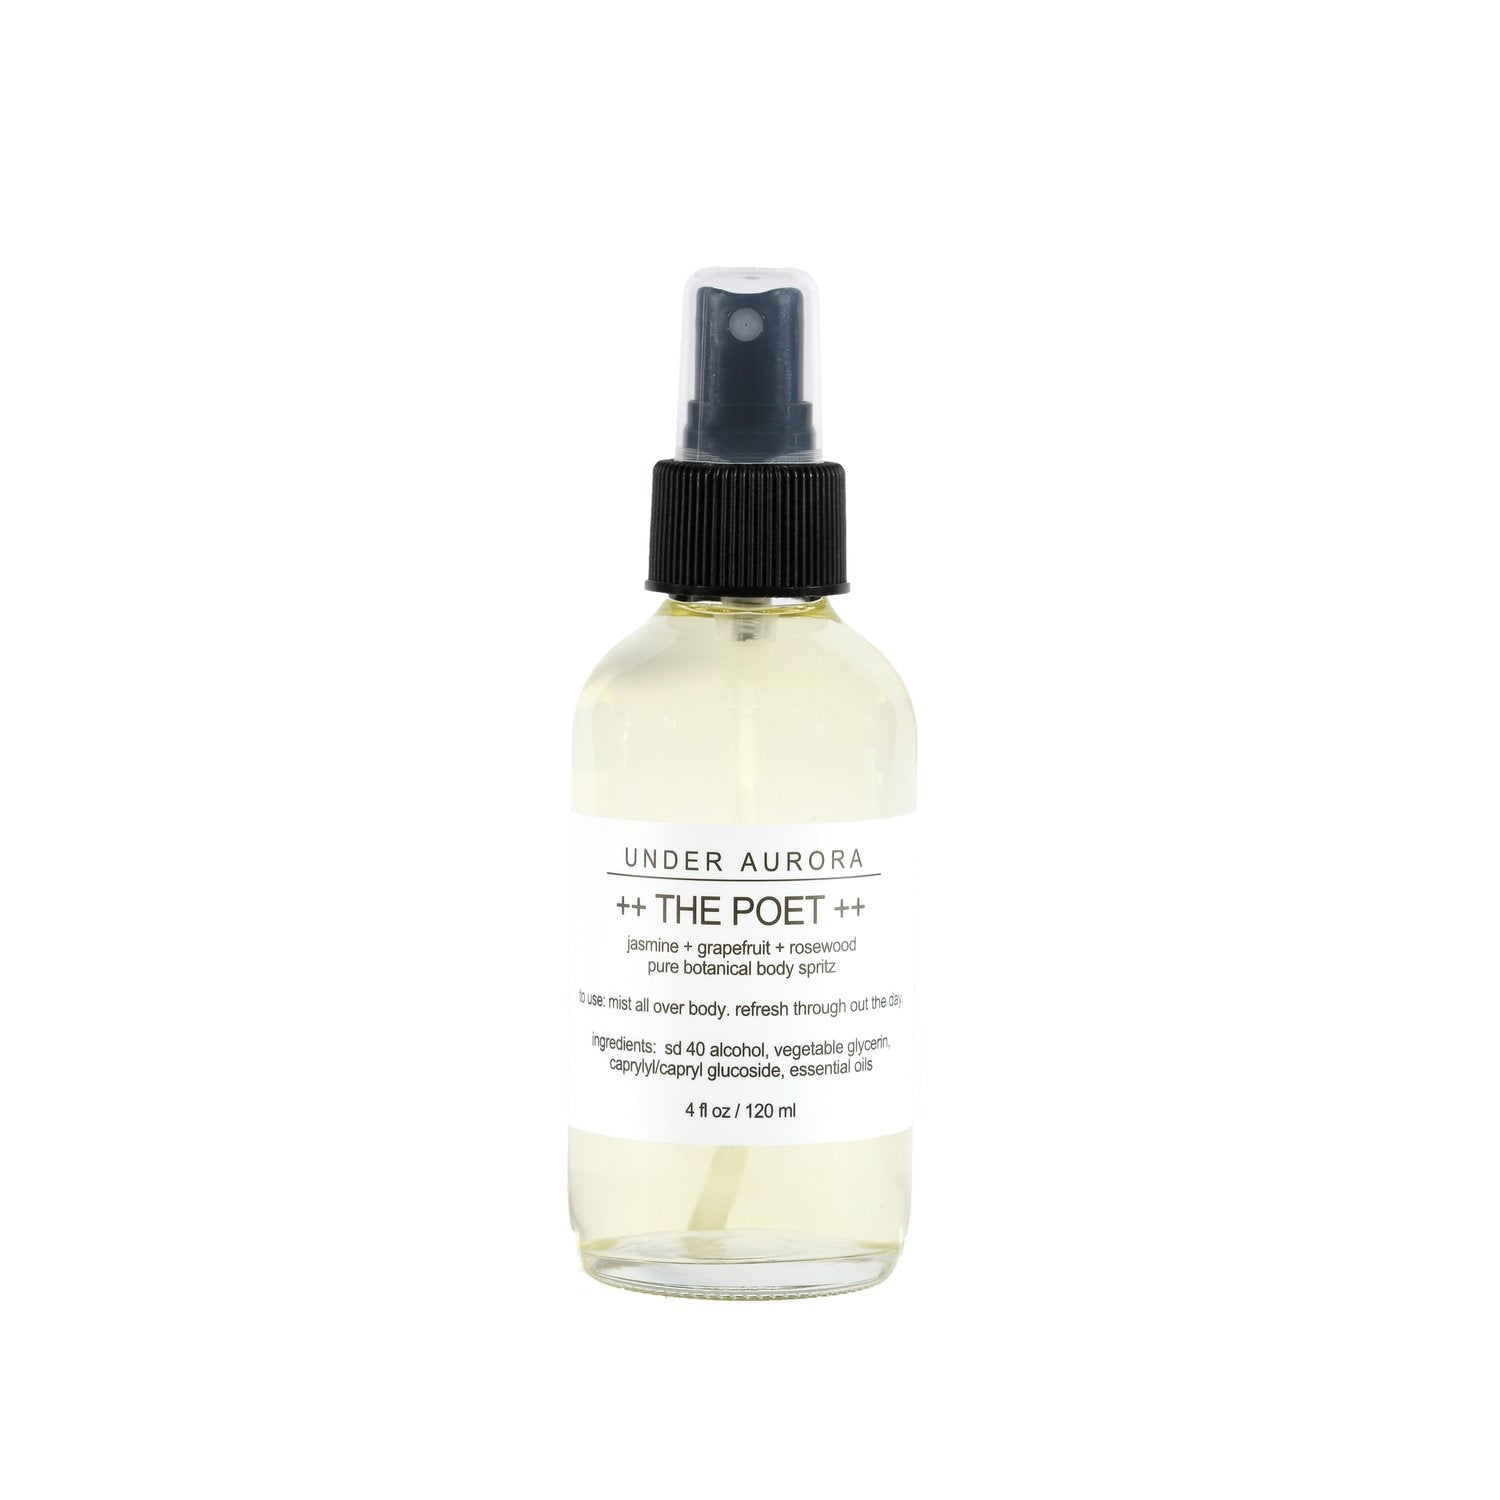 Botanical Body Spritz - The Poet